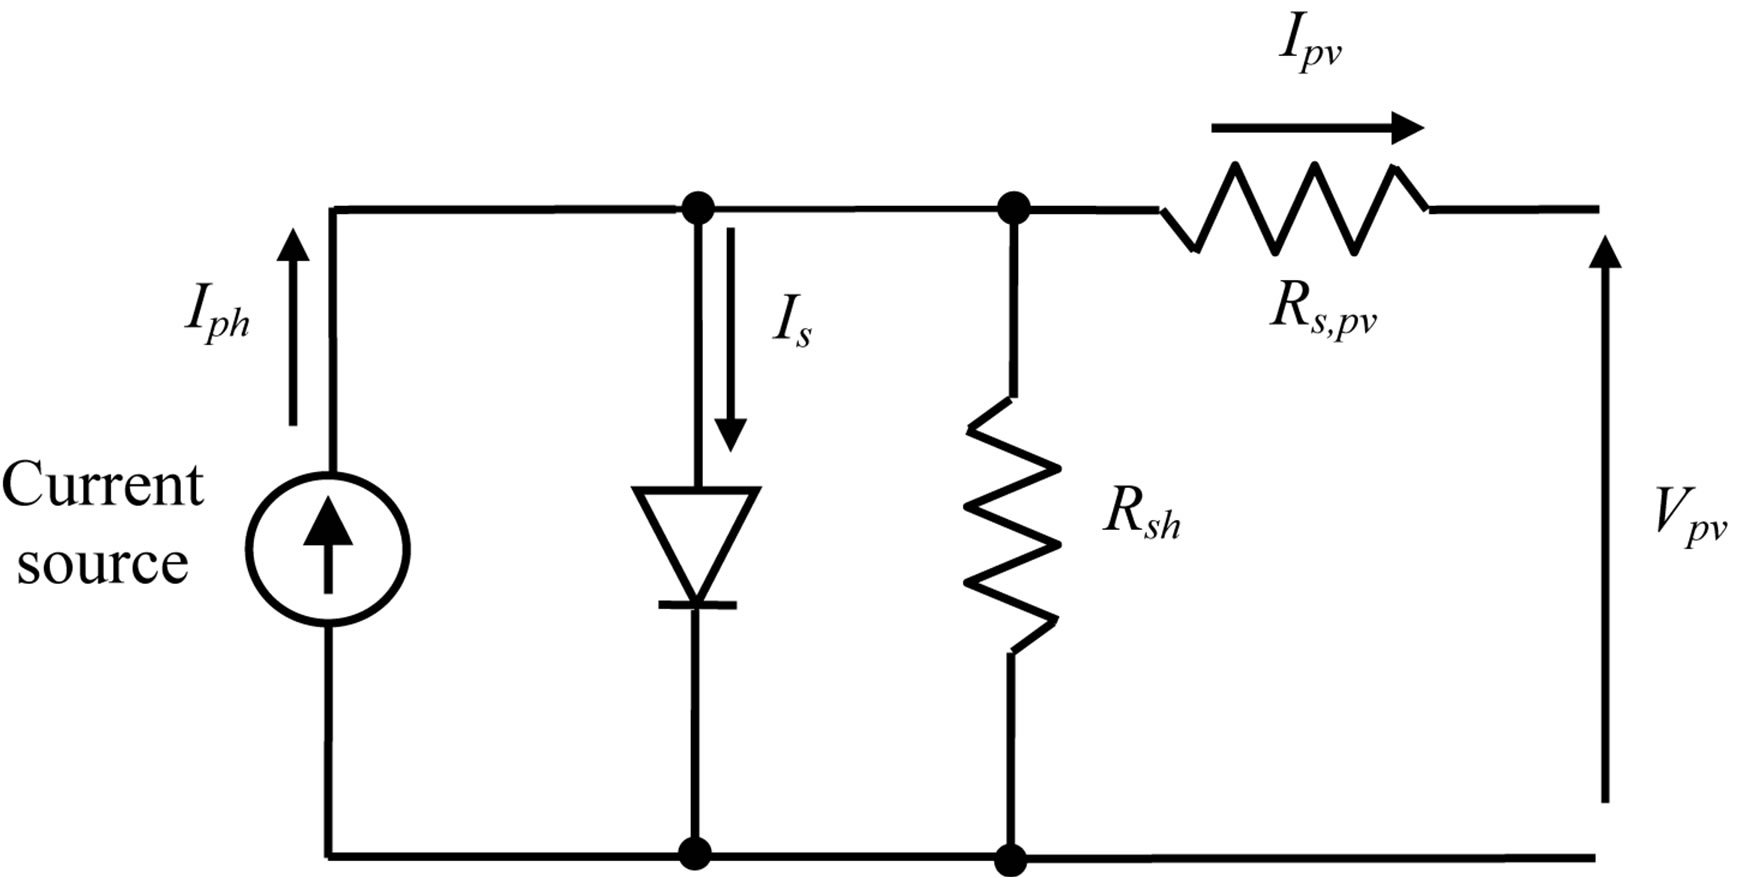 pv diagram for a refrigerator